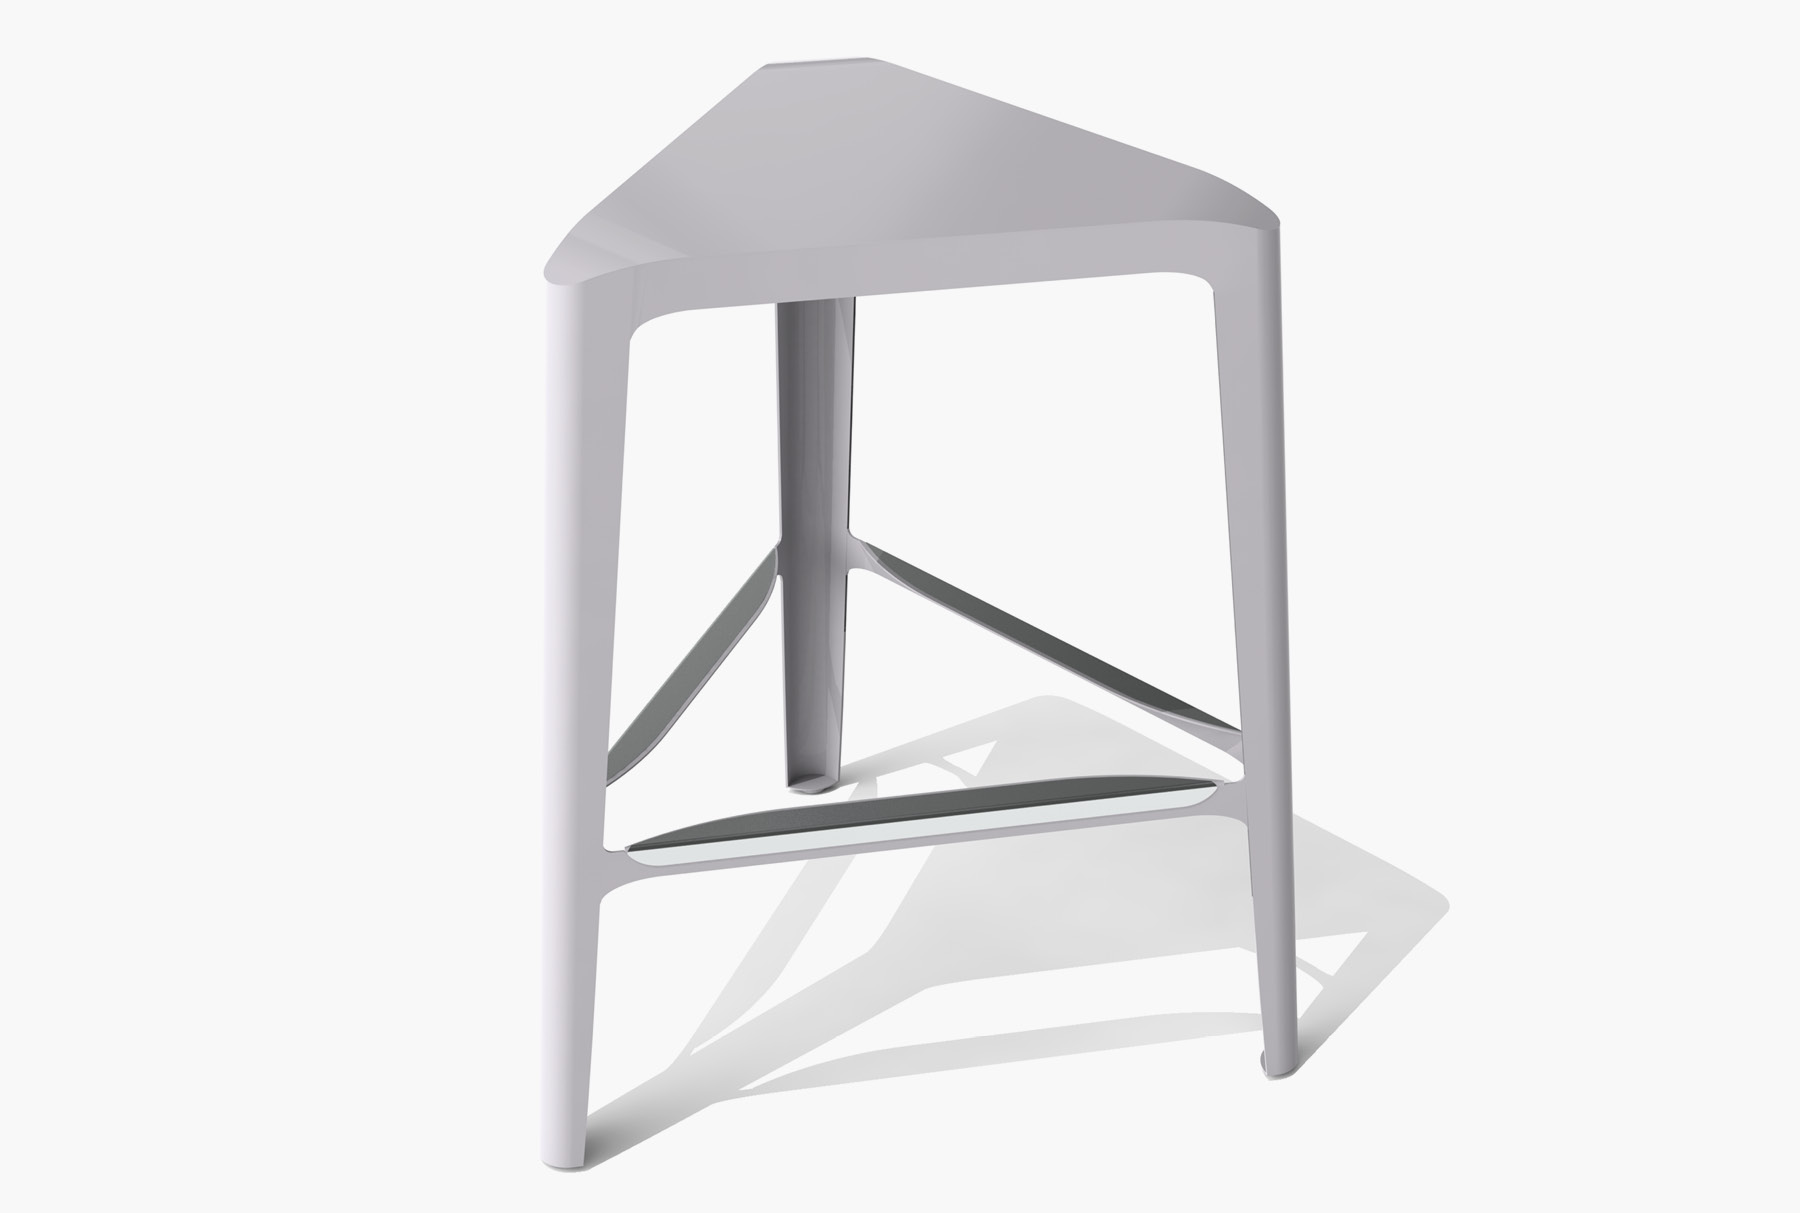 Arktura Clic Mid Stool in Aviator Gray